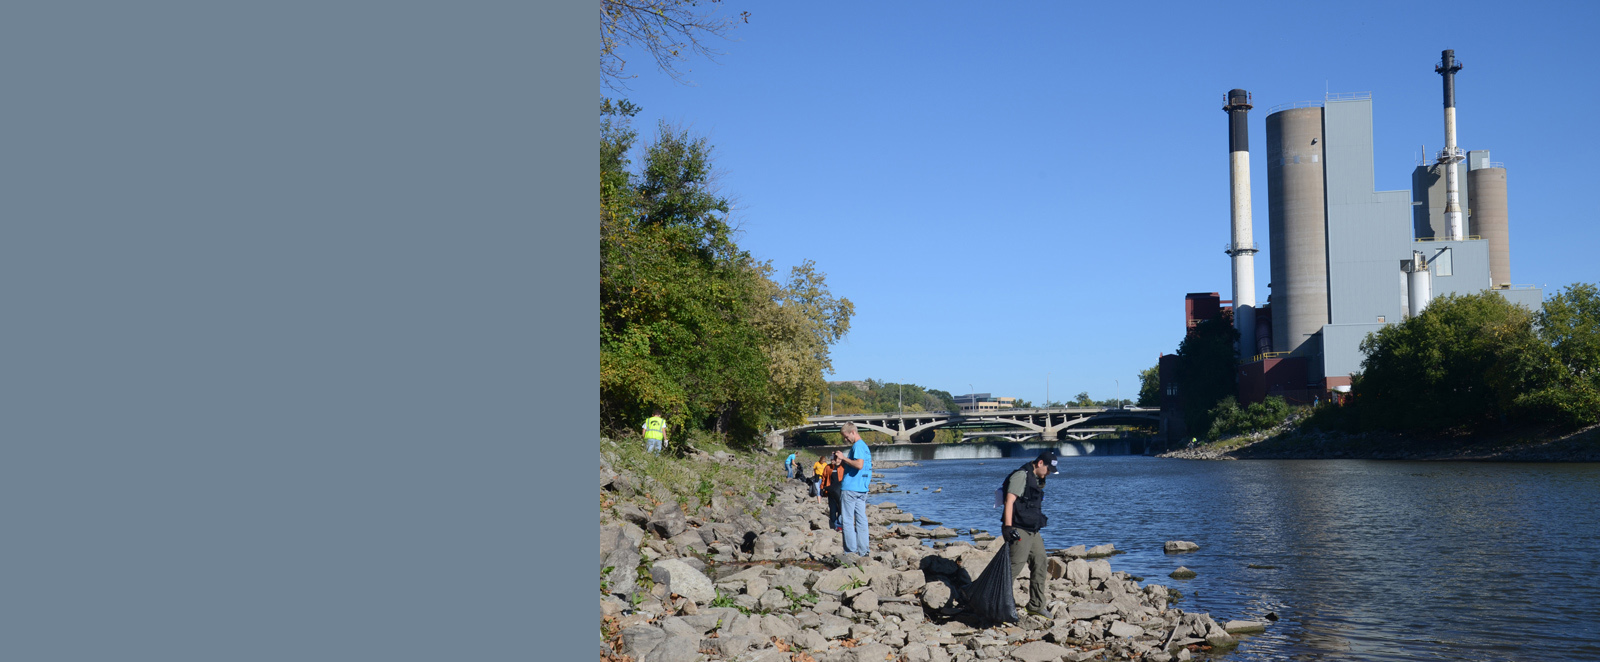 Volunteers gather trash along the banks of the Iowa River.